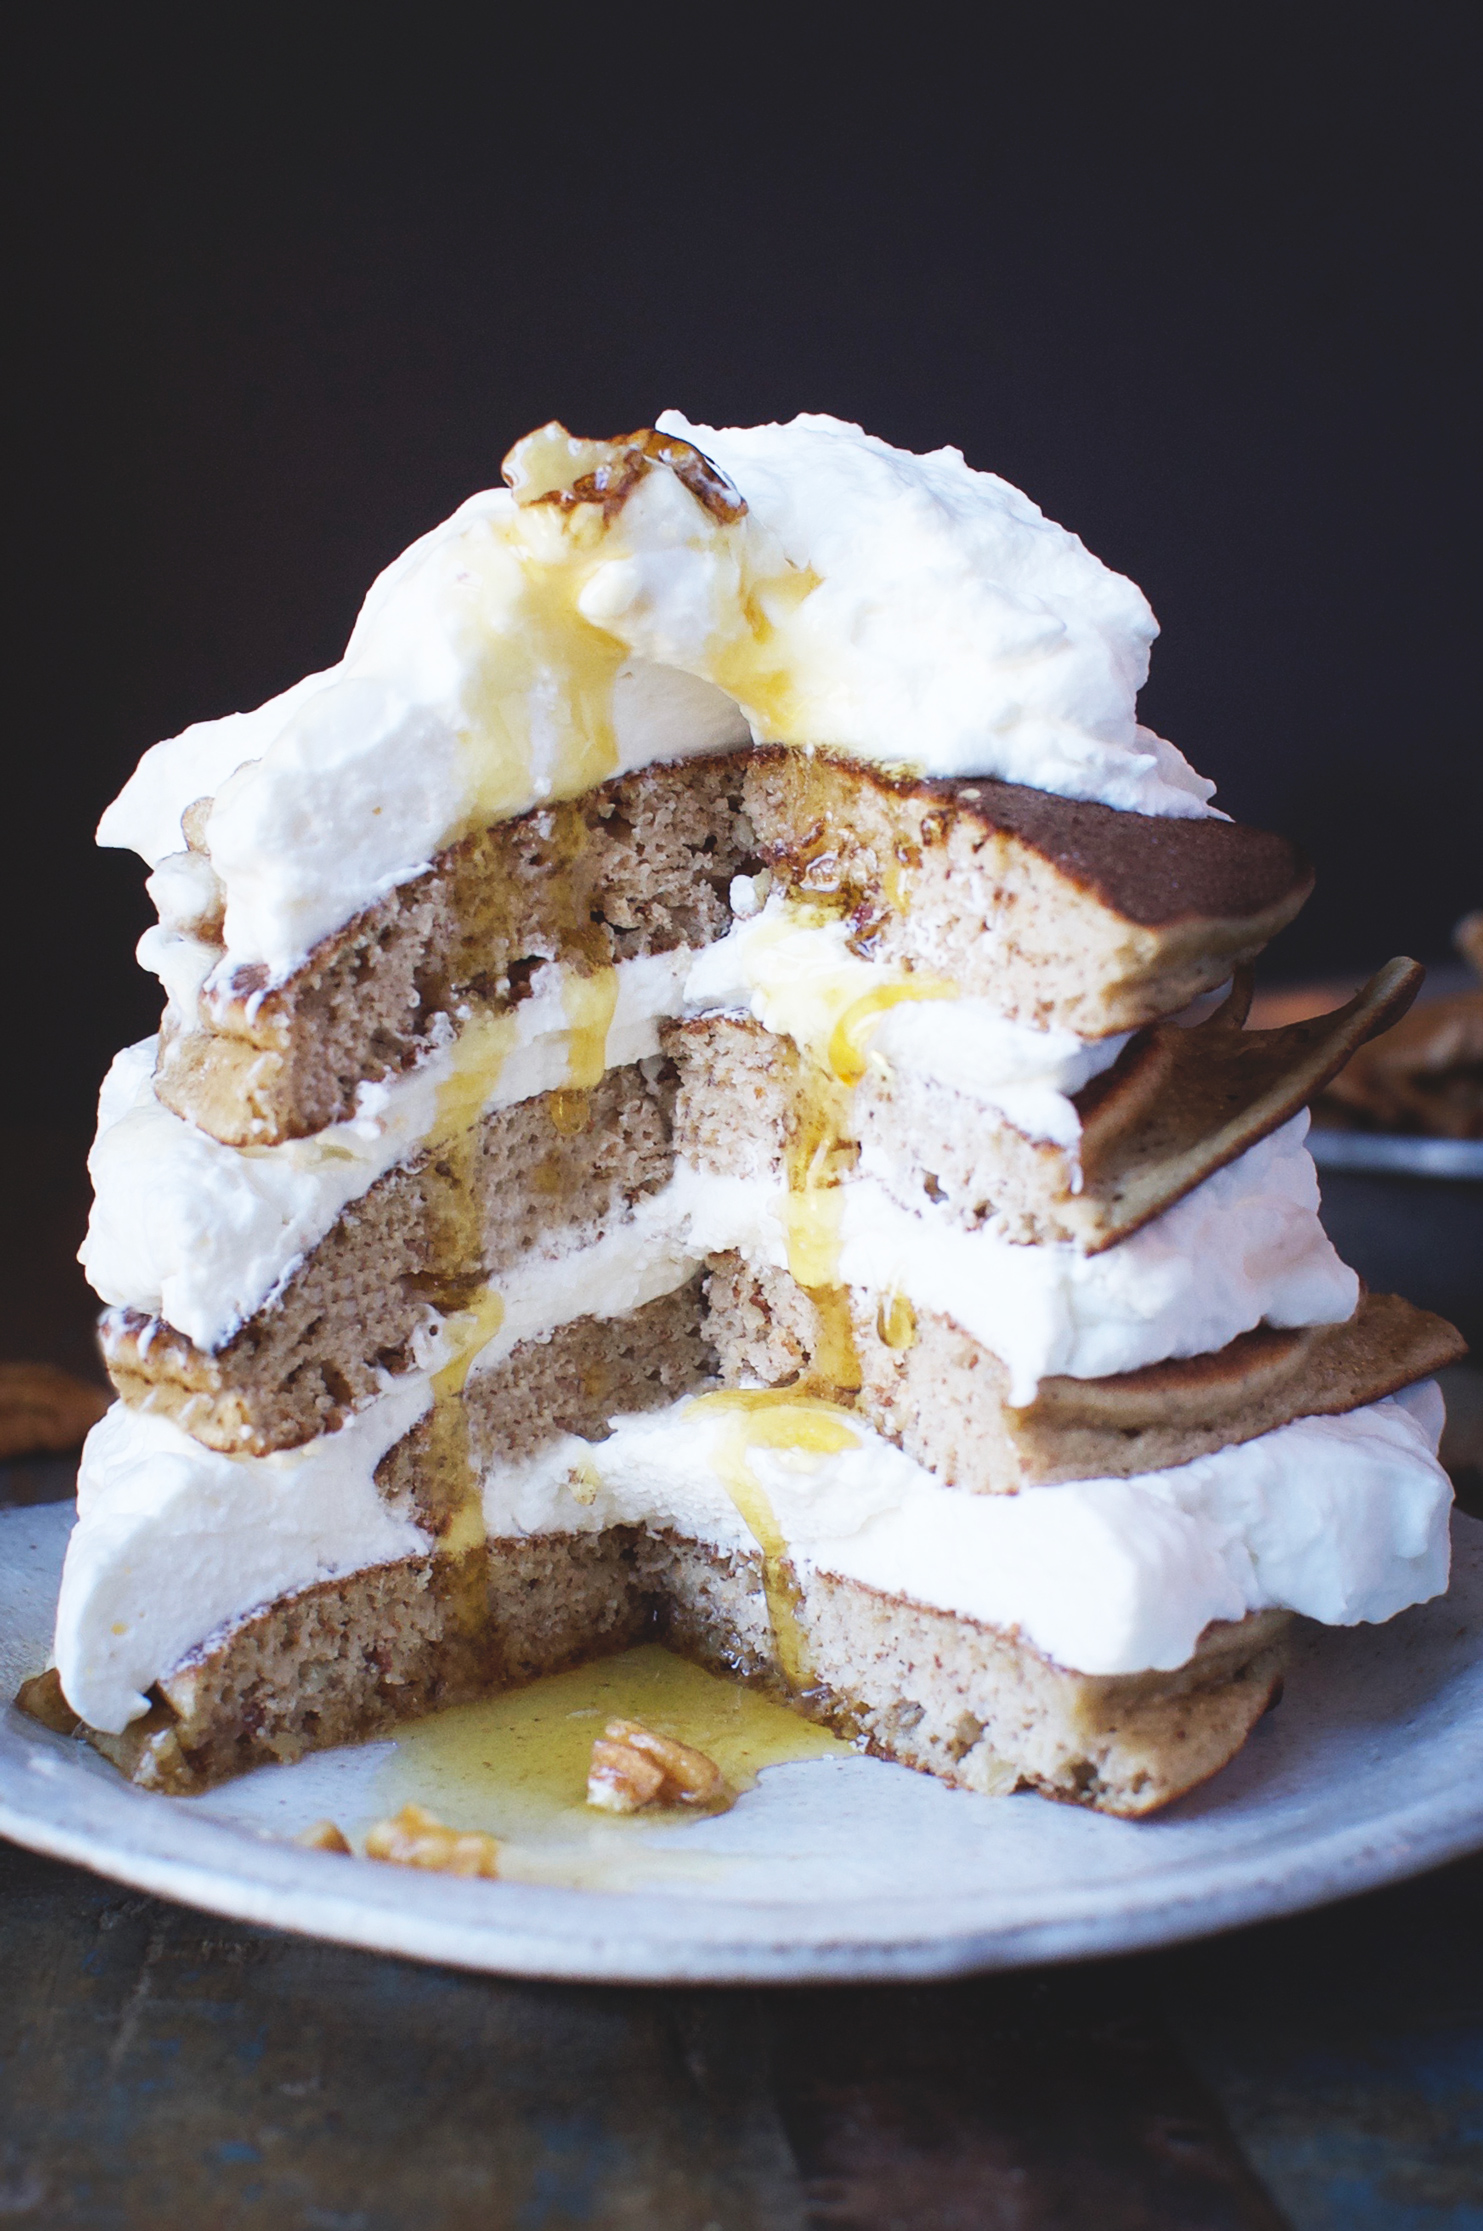 Low-Carb Banana Nut Pancakes stacked with whipped cream between and a piece cut out.